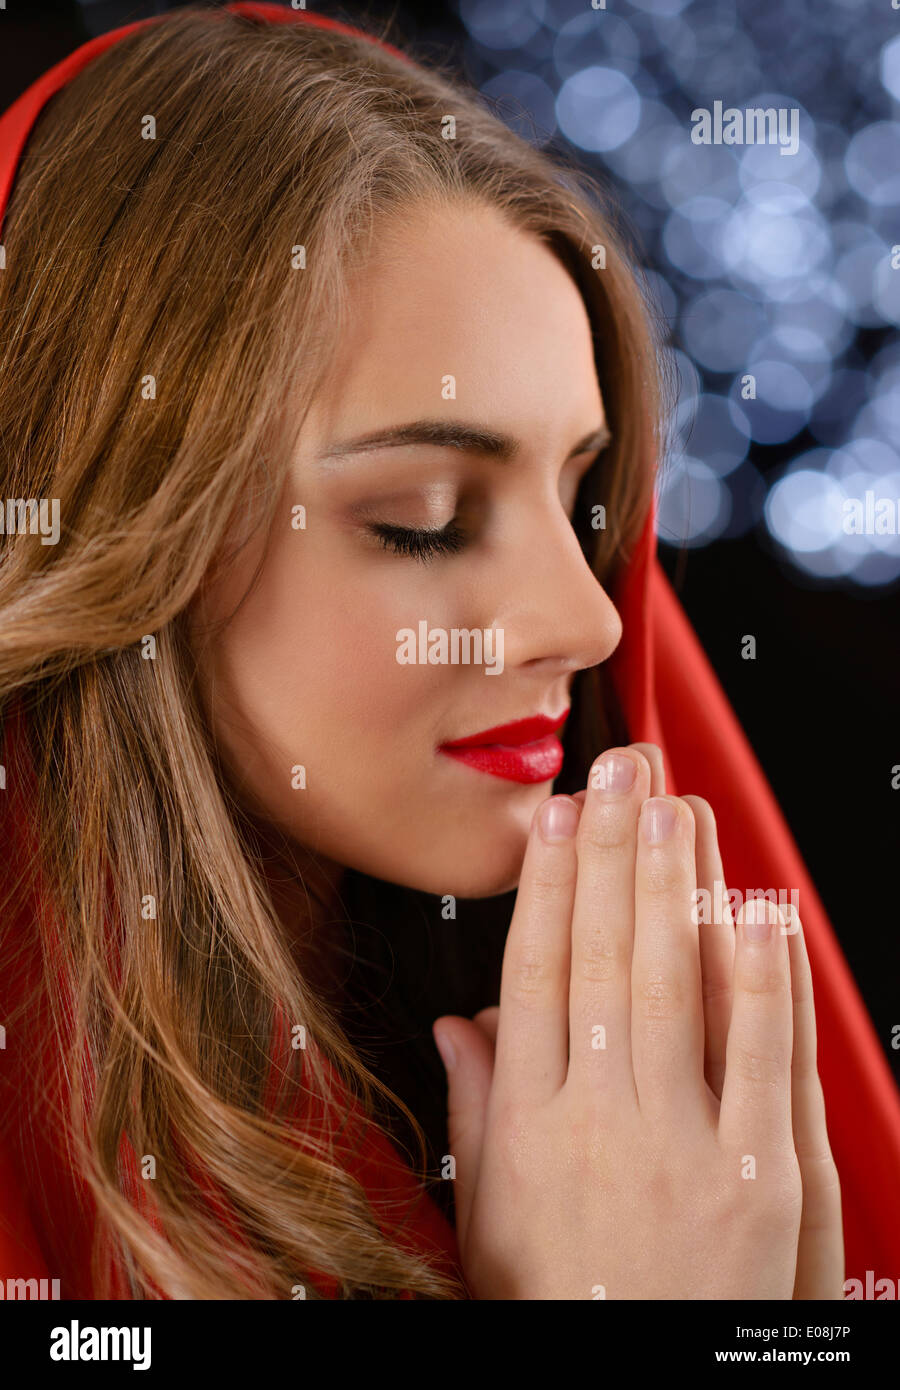 Beautiful woman praying with blurred lights in background - Stock Image